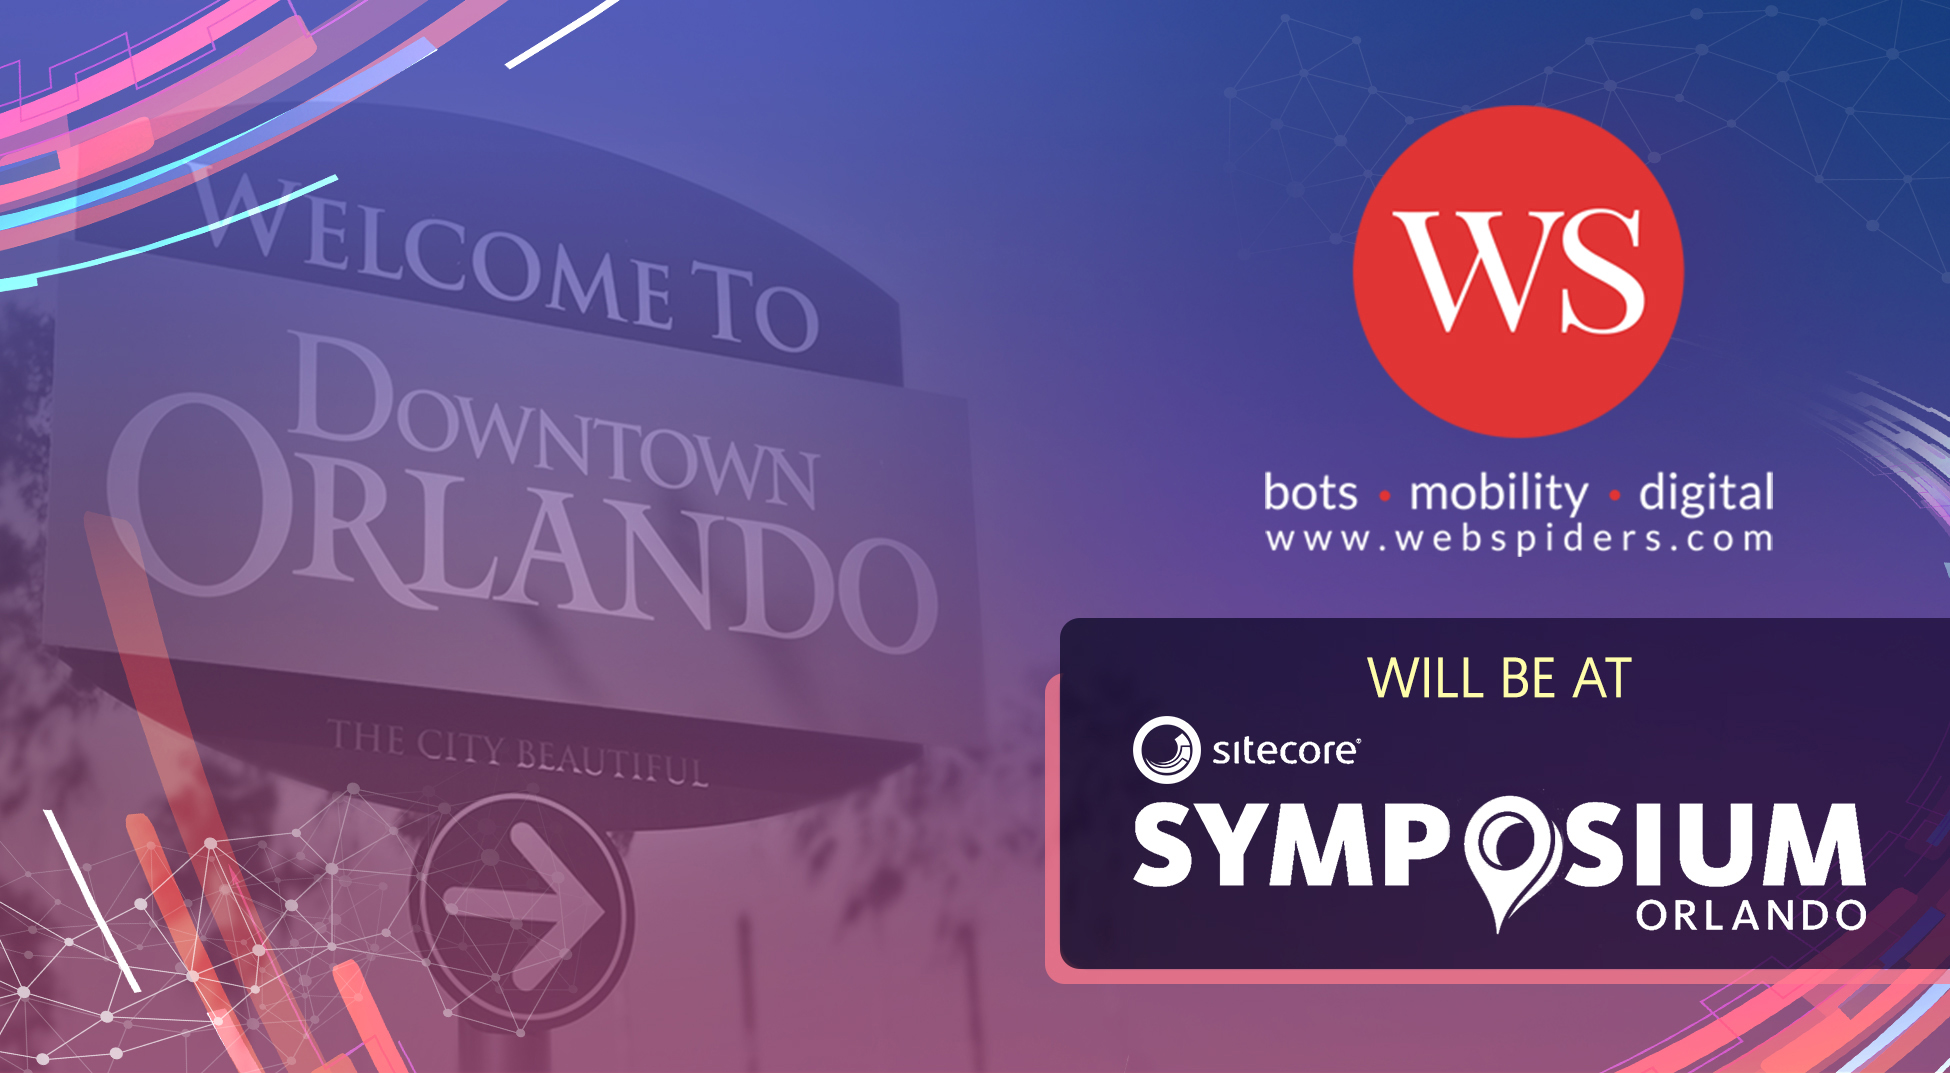 Join Web Spiders at Sitecore Symposium 2018!